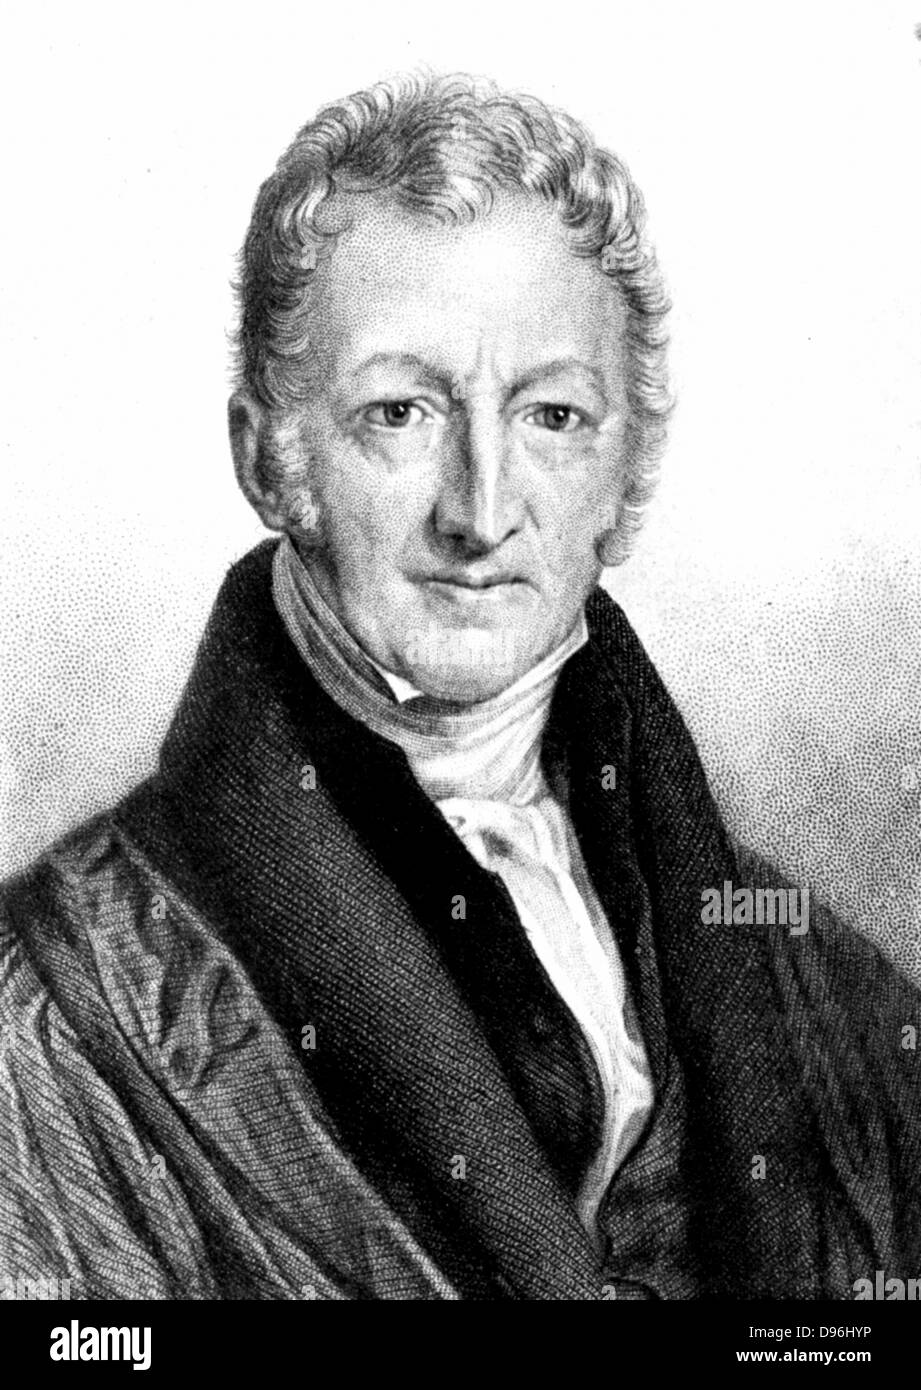 thomas robert malthus an essay on the principle of population Thomas robert malthus was the first economist to propose a systematic theory of population he articulated his views regarding population in his famous book, essay on the principle of population (1798), for which he collected empirical data to support his thesis malthus had the second edition of his book.